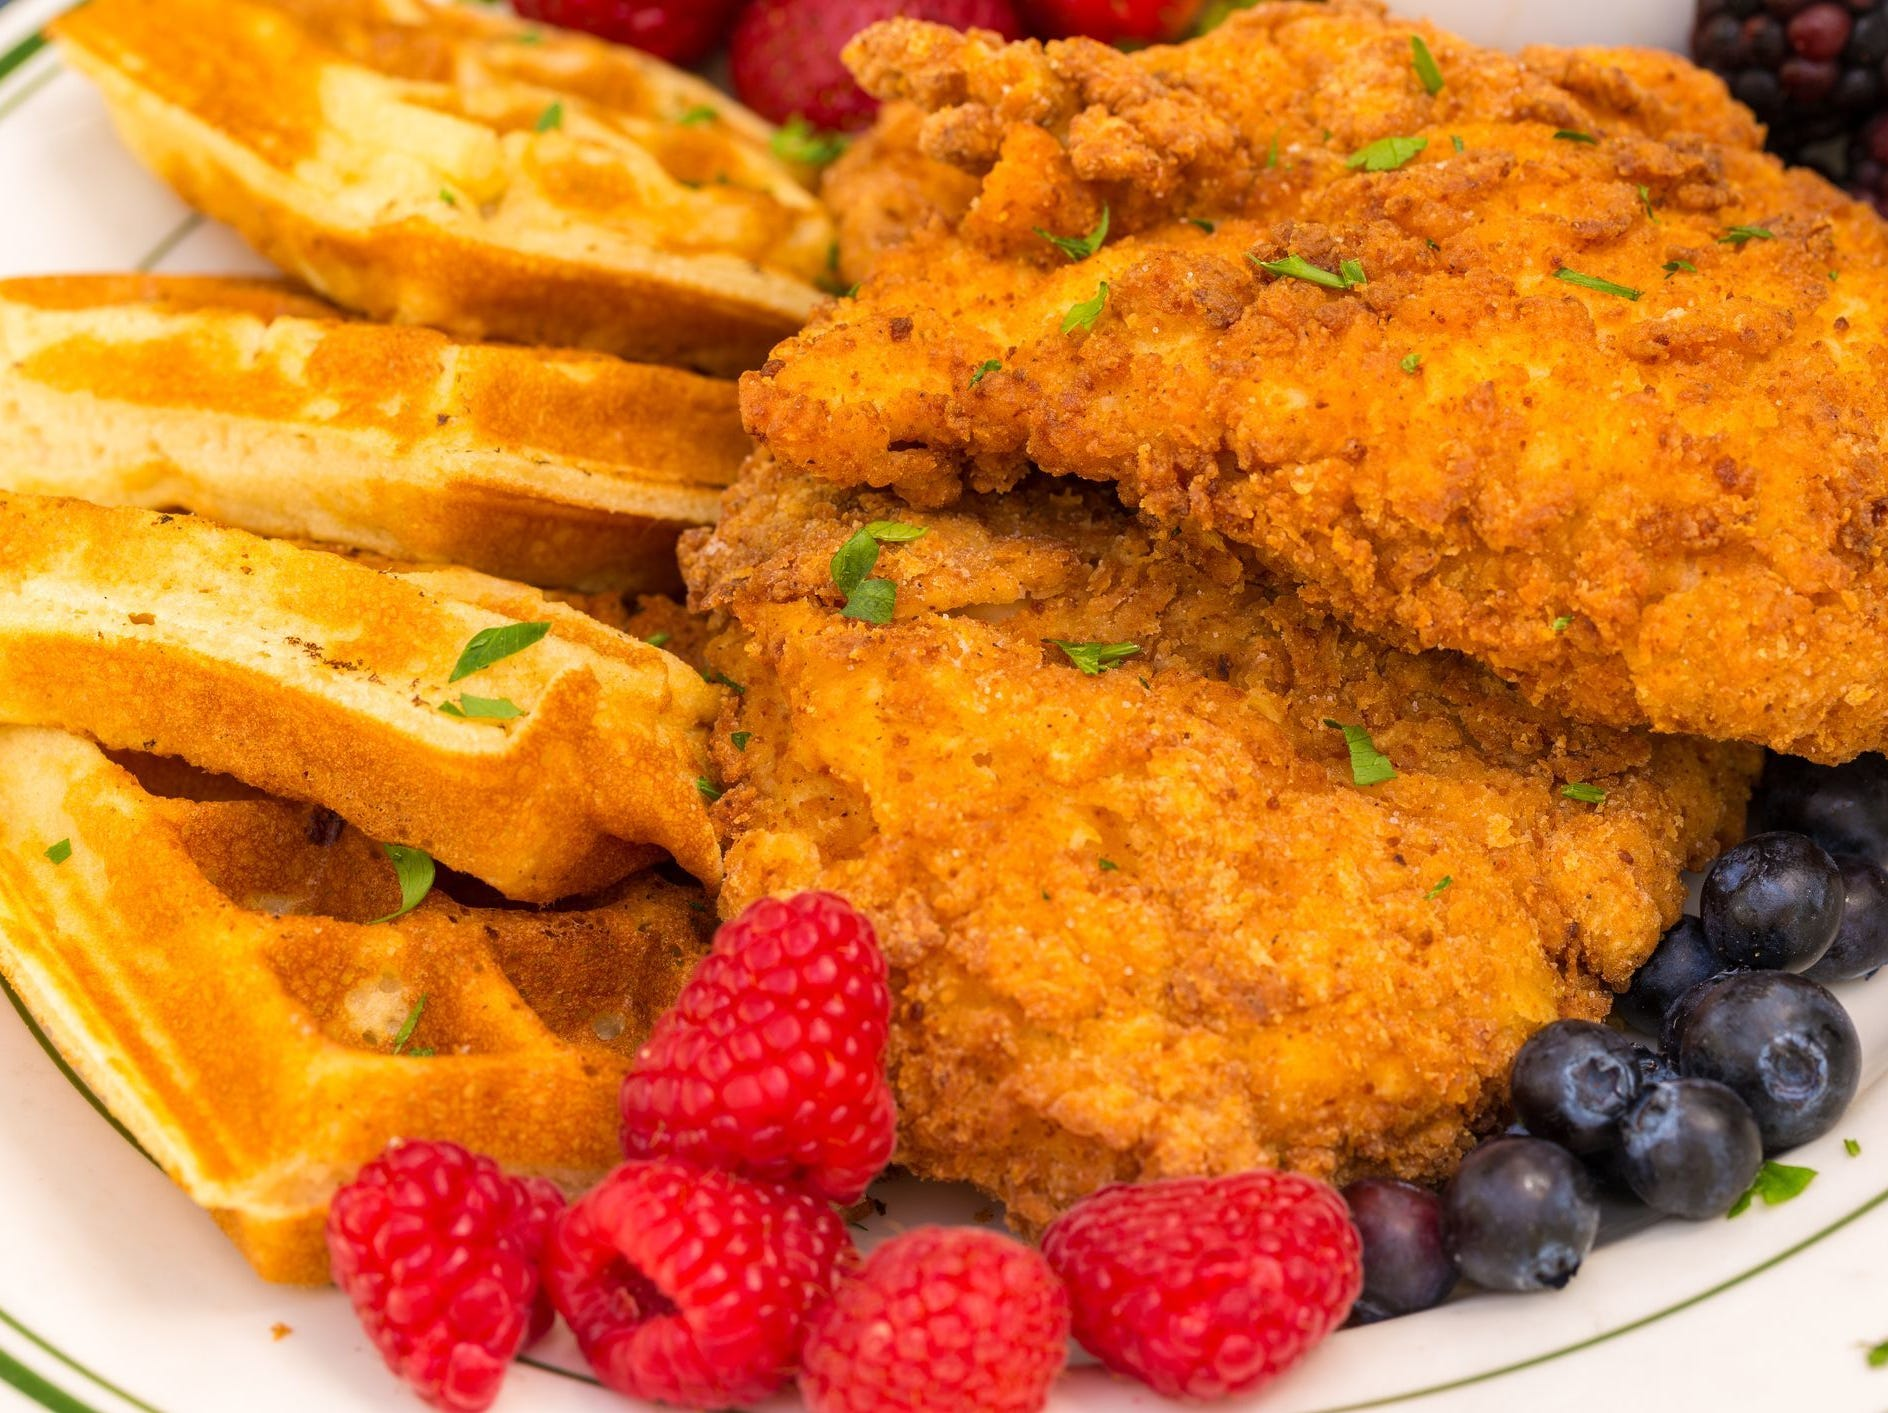 Chicken and waffles is one of the comfort foods served at the three Metro Diner locations in Delaware.